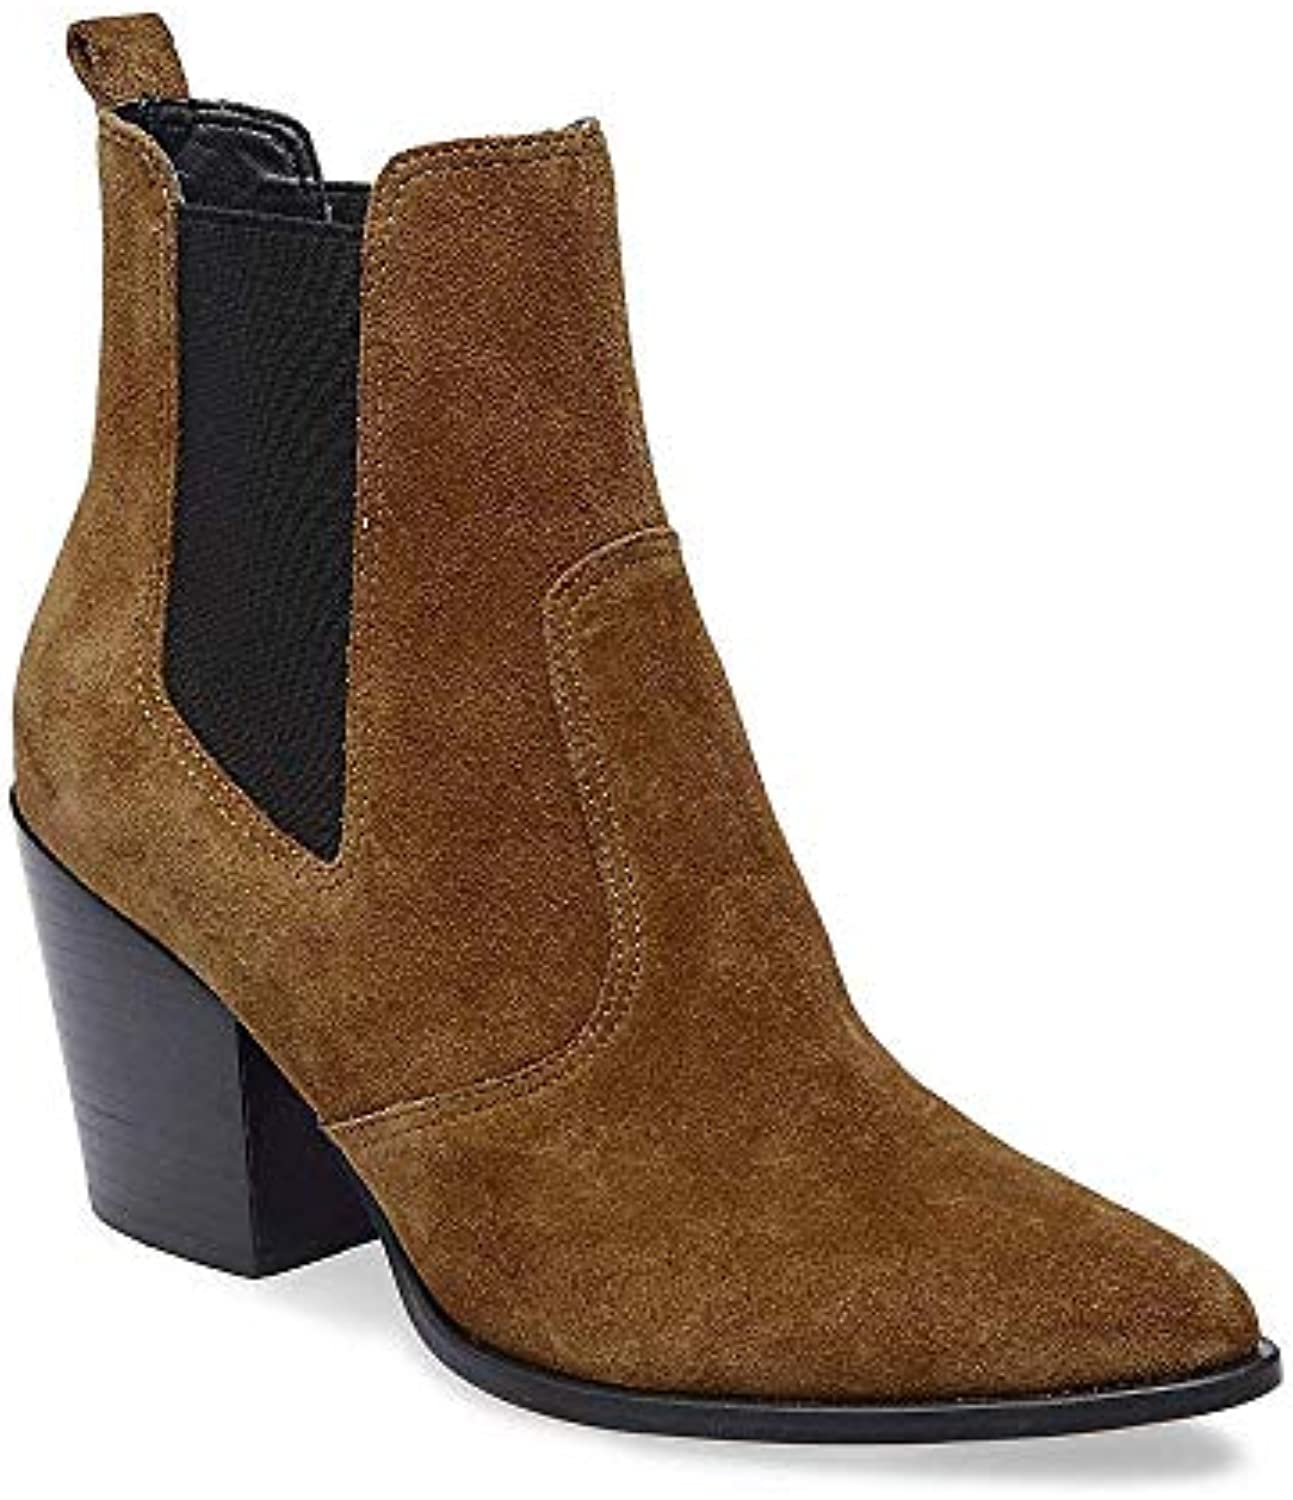 Steve Madden Femme's Patricia Casual Chestnut Suede Bootie Casual Patricia 10.0 USB07G5HJ3QLParent 2bcf06